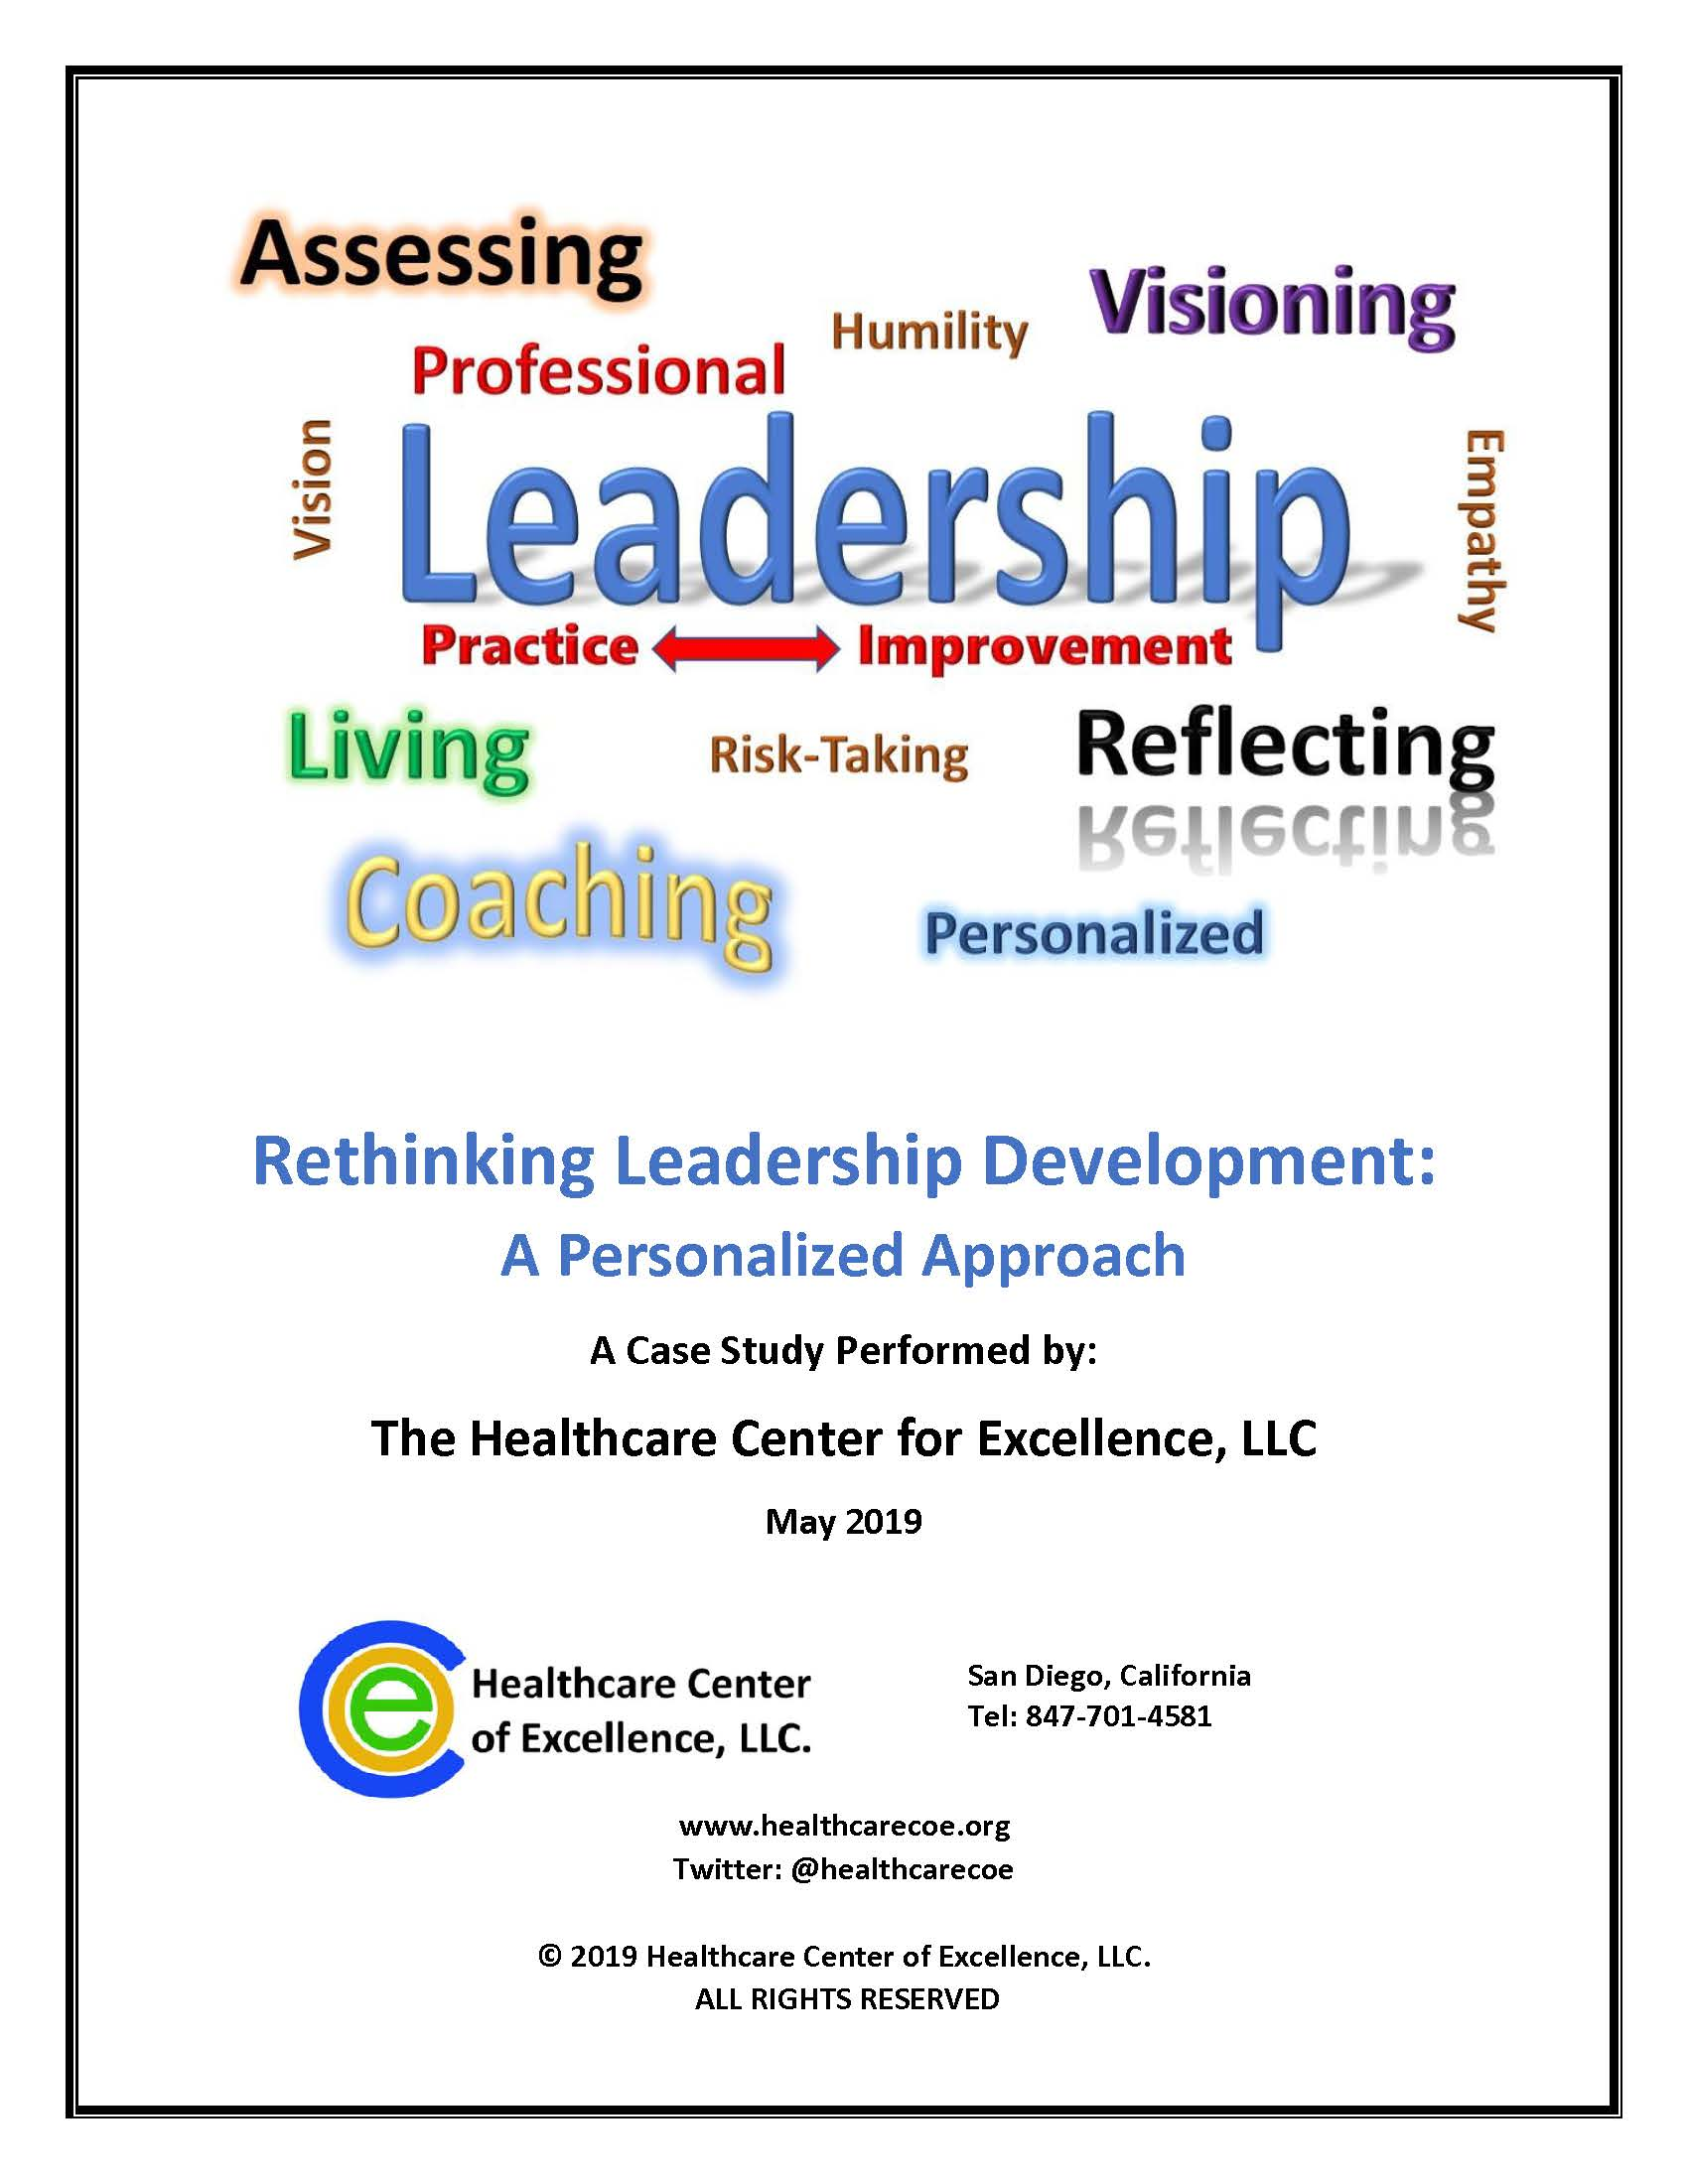 Rethinking Leadership Development: A Personalized Approach - A Case Study